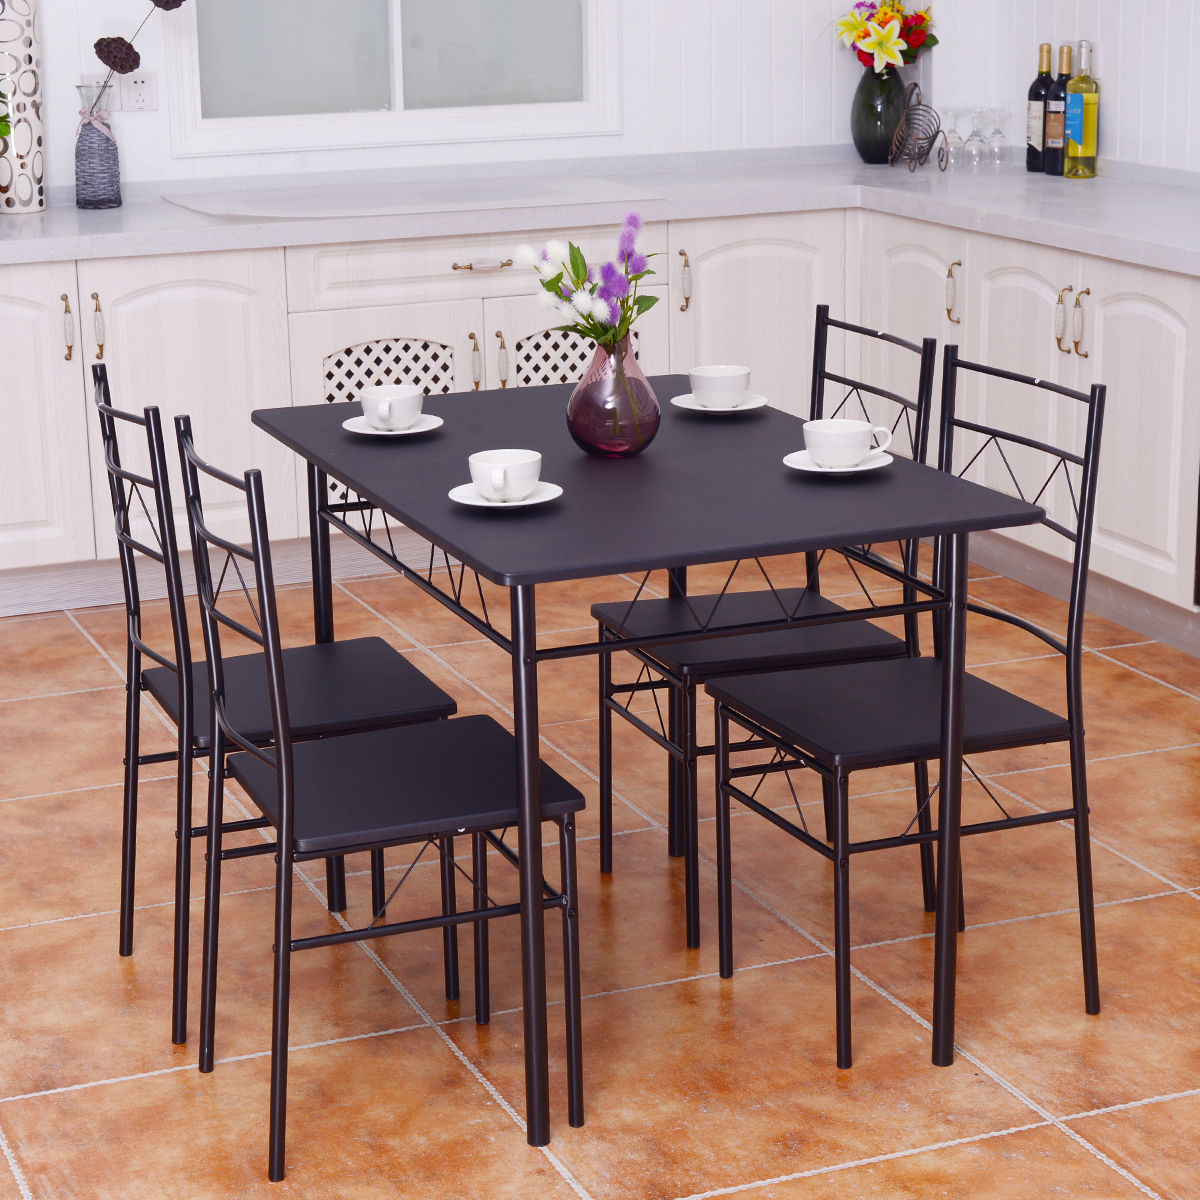 Charming Costway 5 Piece Dining Table Set 4 Chairs Wood Metal Kitchen Breakfast  Furniture Black